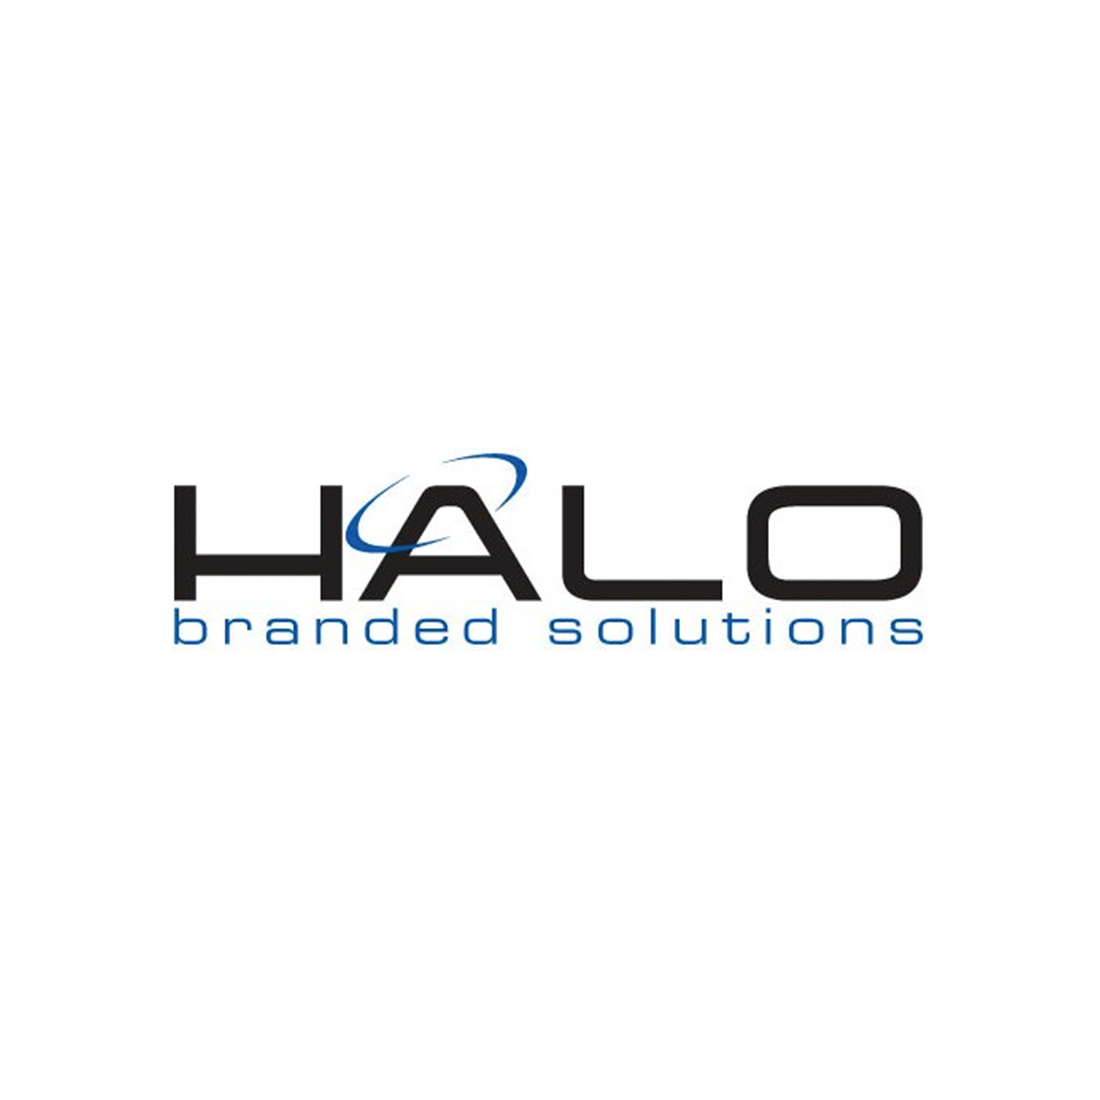 Halo Branded Solutions was founded in 1952 and headquartered in Sterling. Halo is the leading promotional products distributor. Halo employs nearly 600 people enjoying a relaxed work environment and casual dress code.